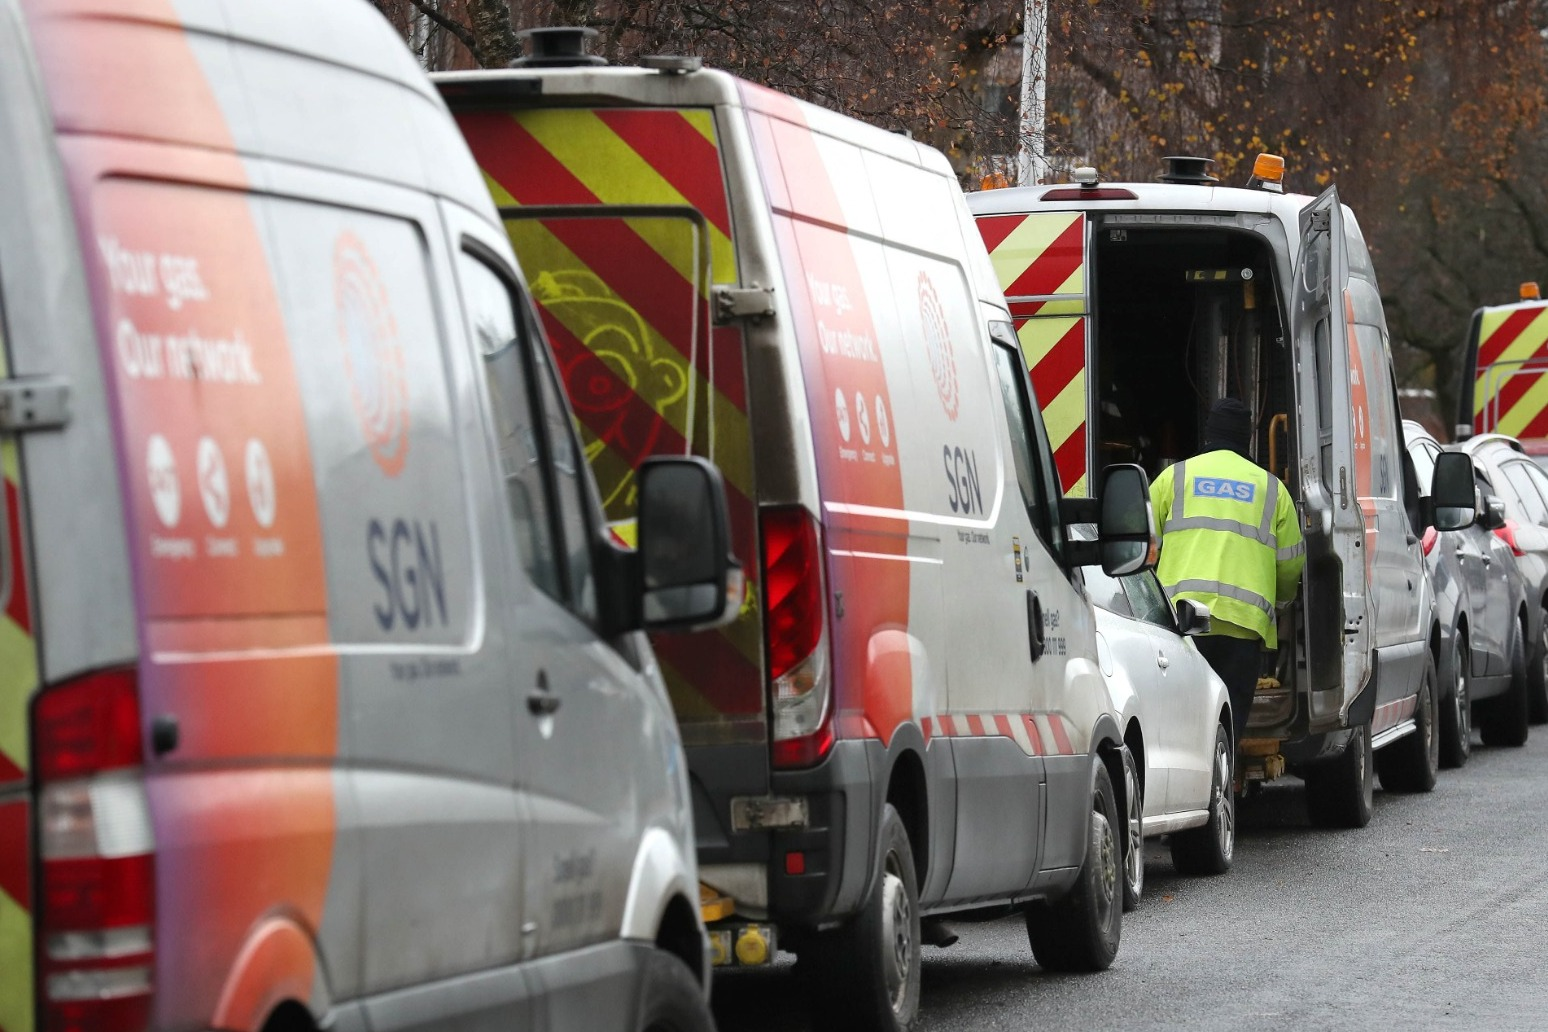 HOMES COULD BE WITHOUT GAS FOR FIVE DAYS AFTER NETWORK FAILURE